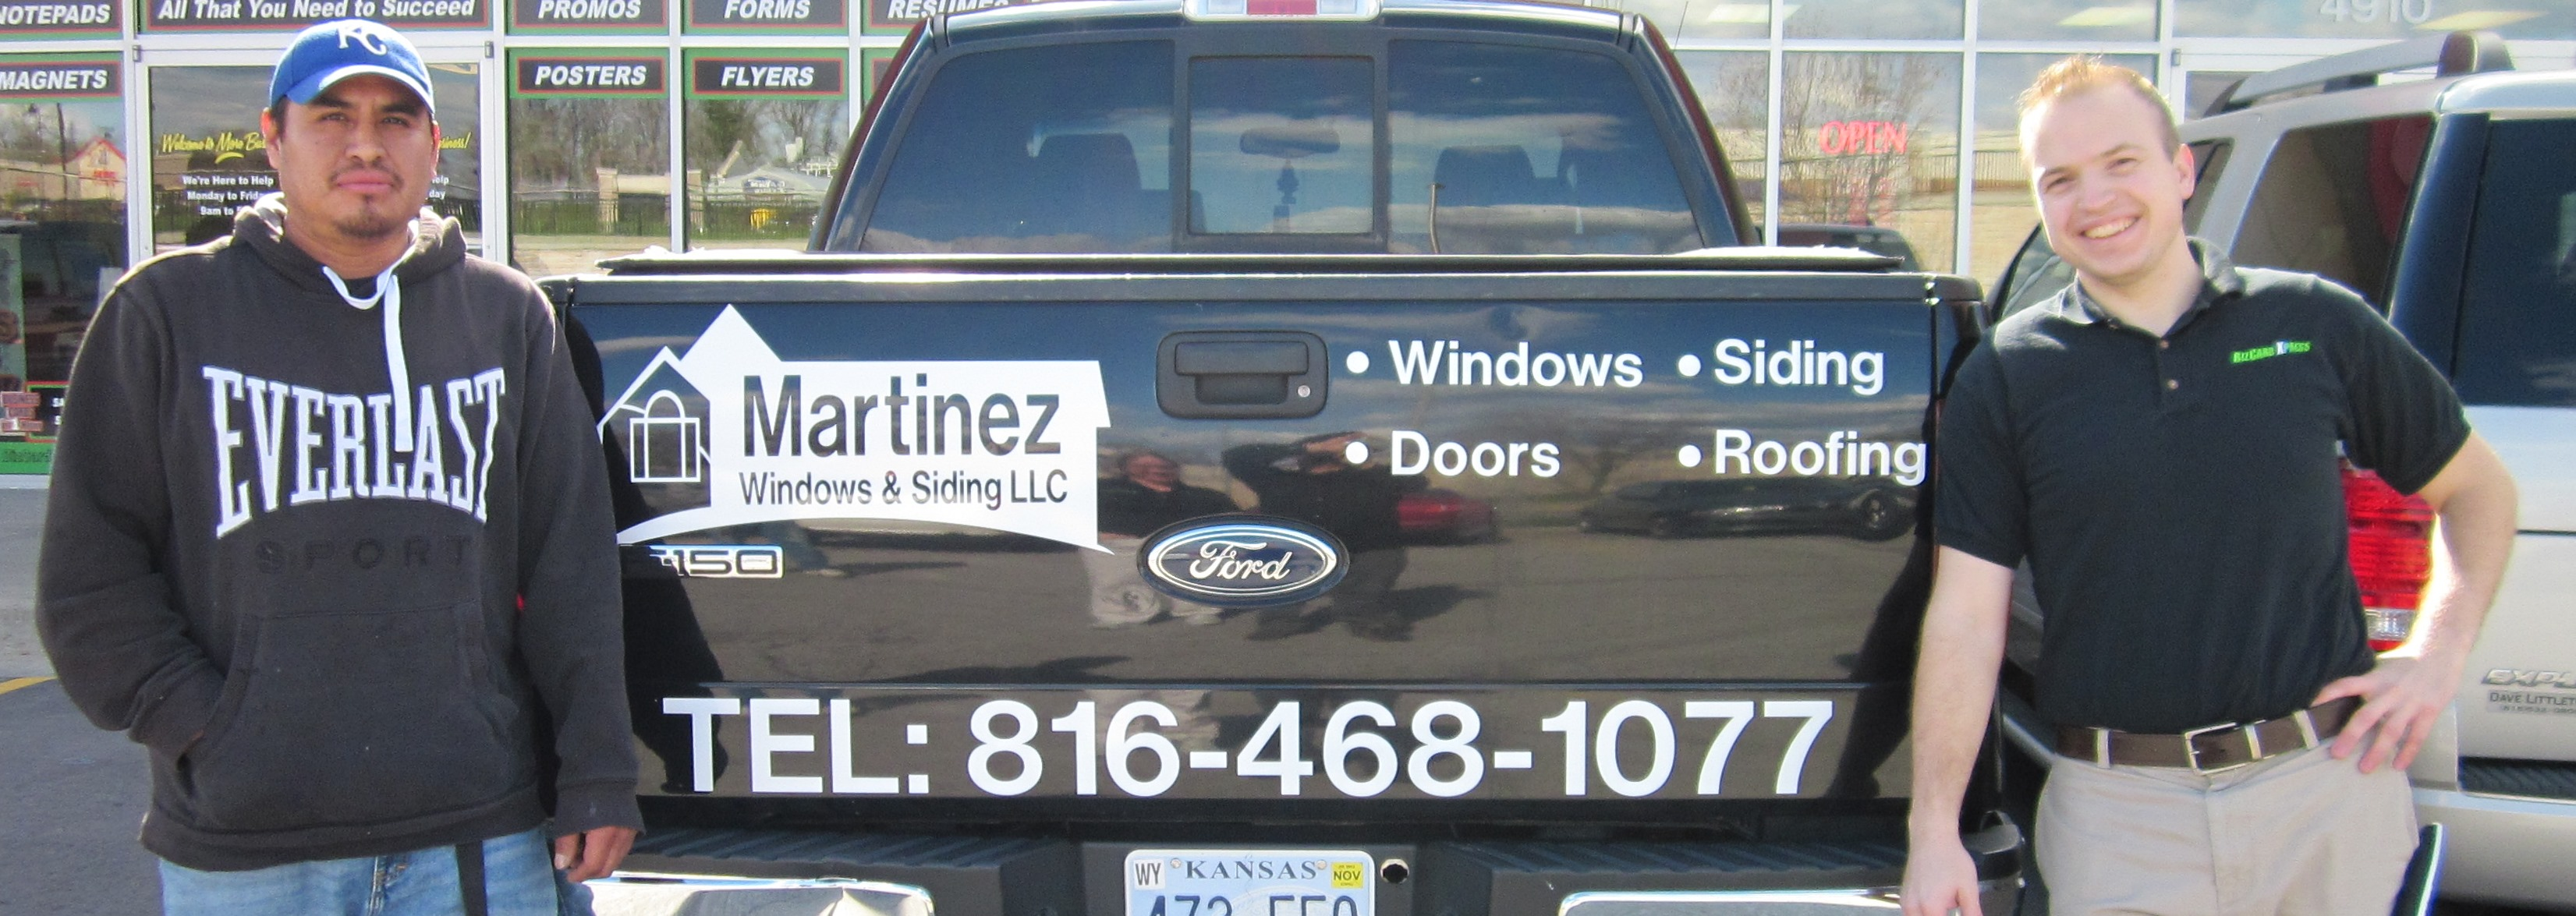 Car Decals Business Cards Kansas City - Business vehicle decals